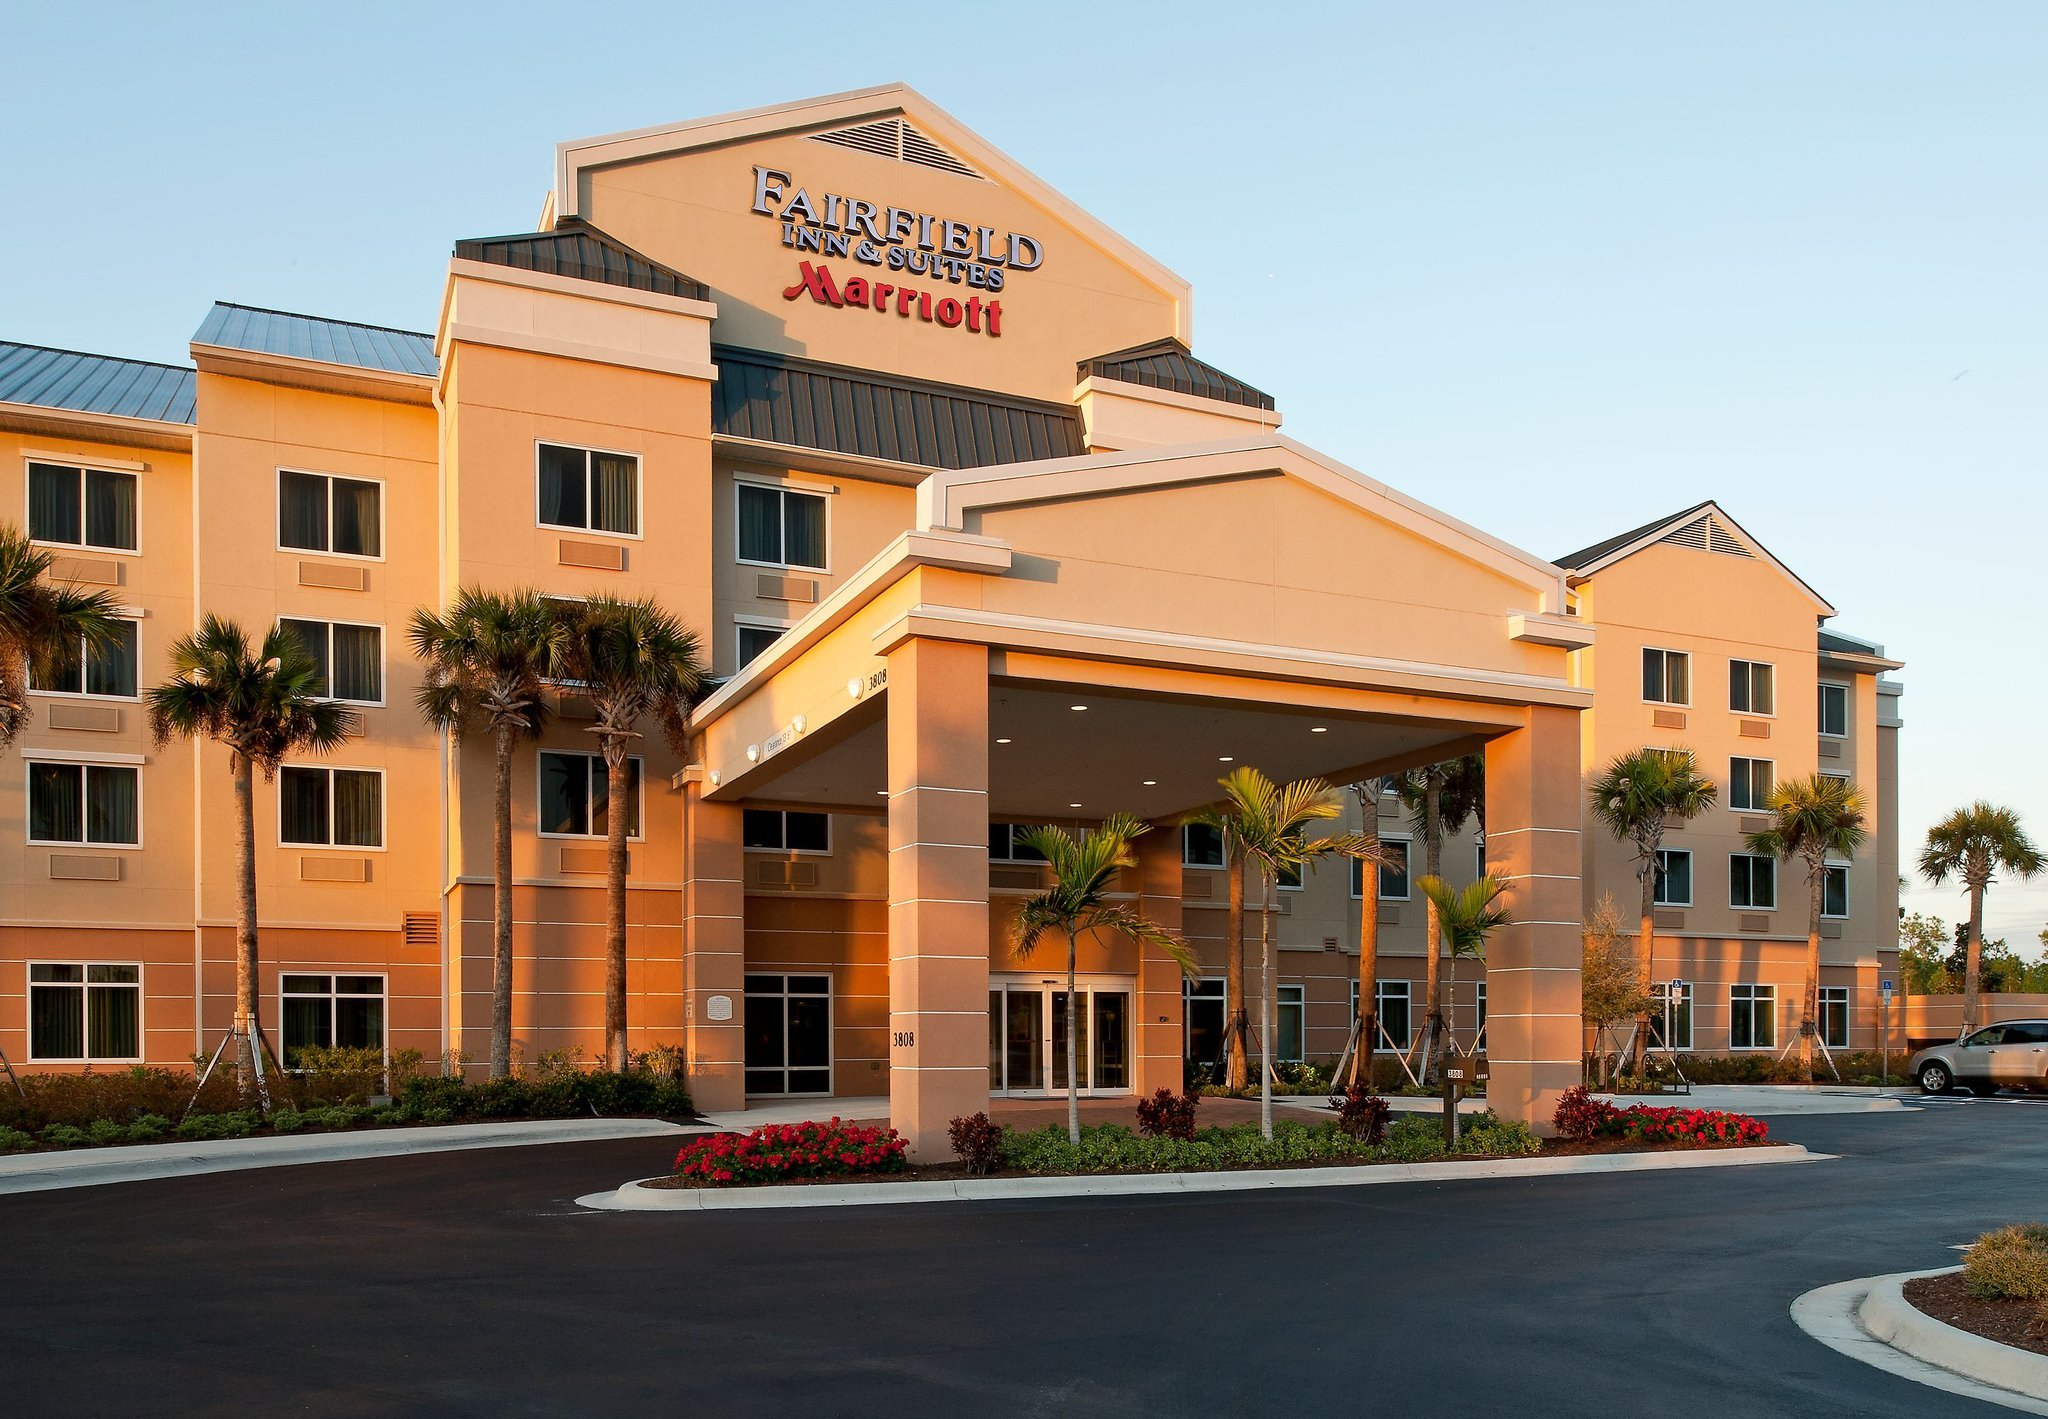 Fairfield Inn & Suites Naples